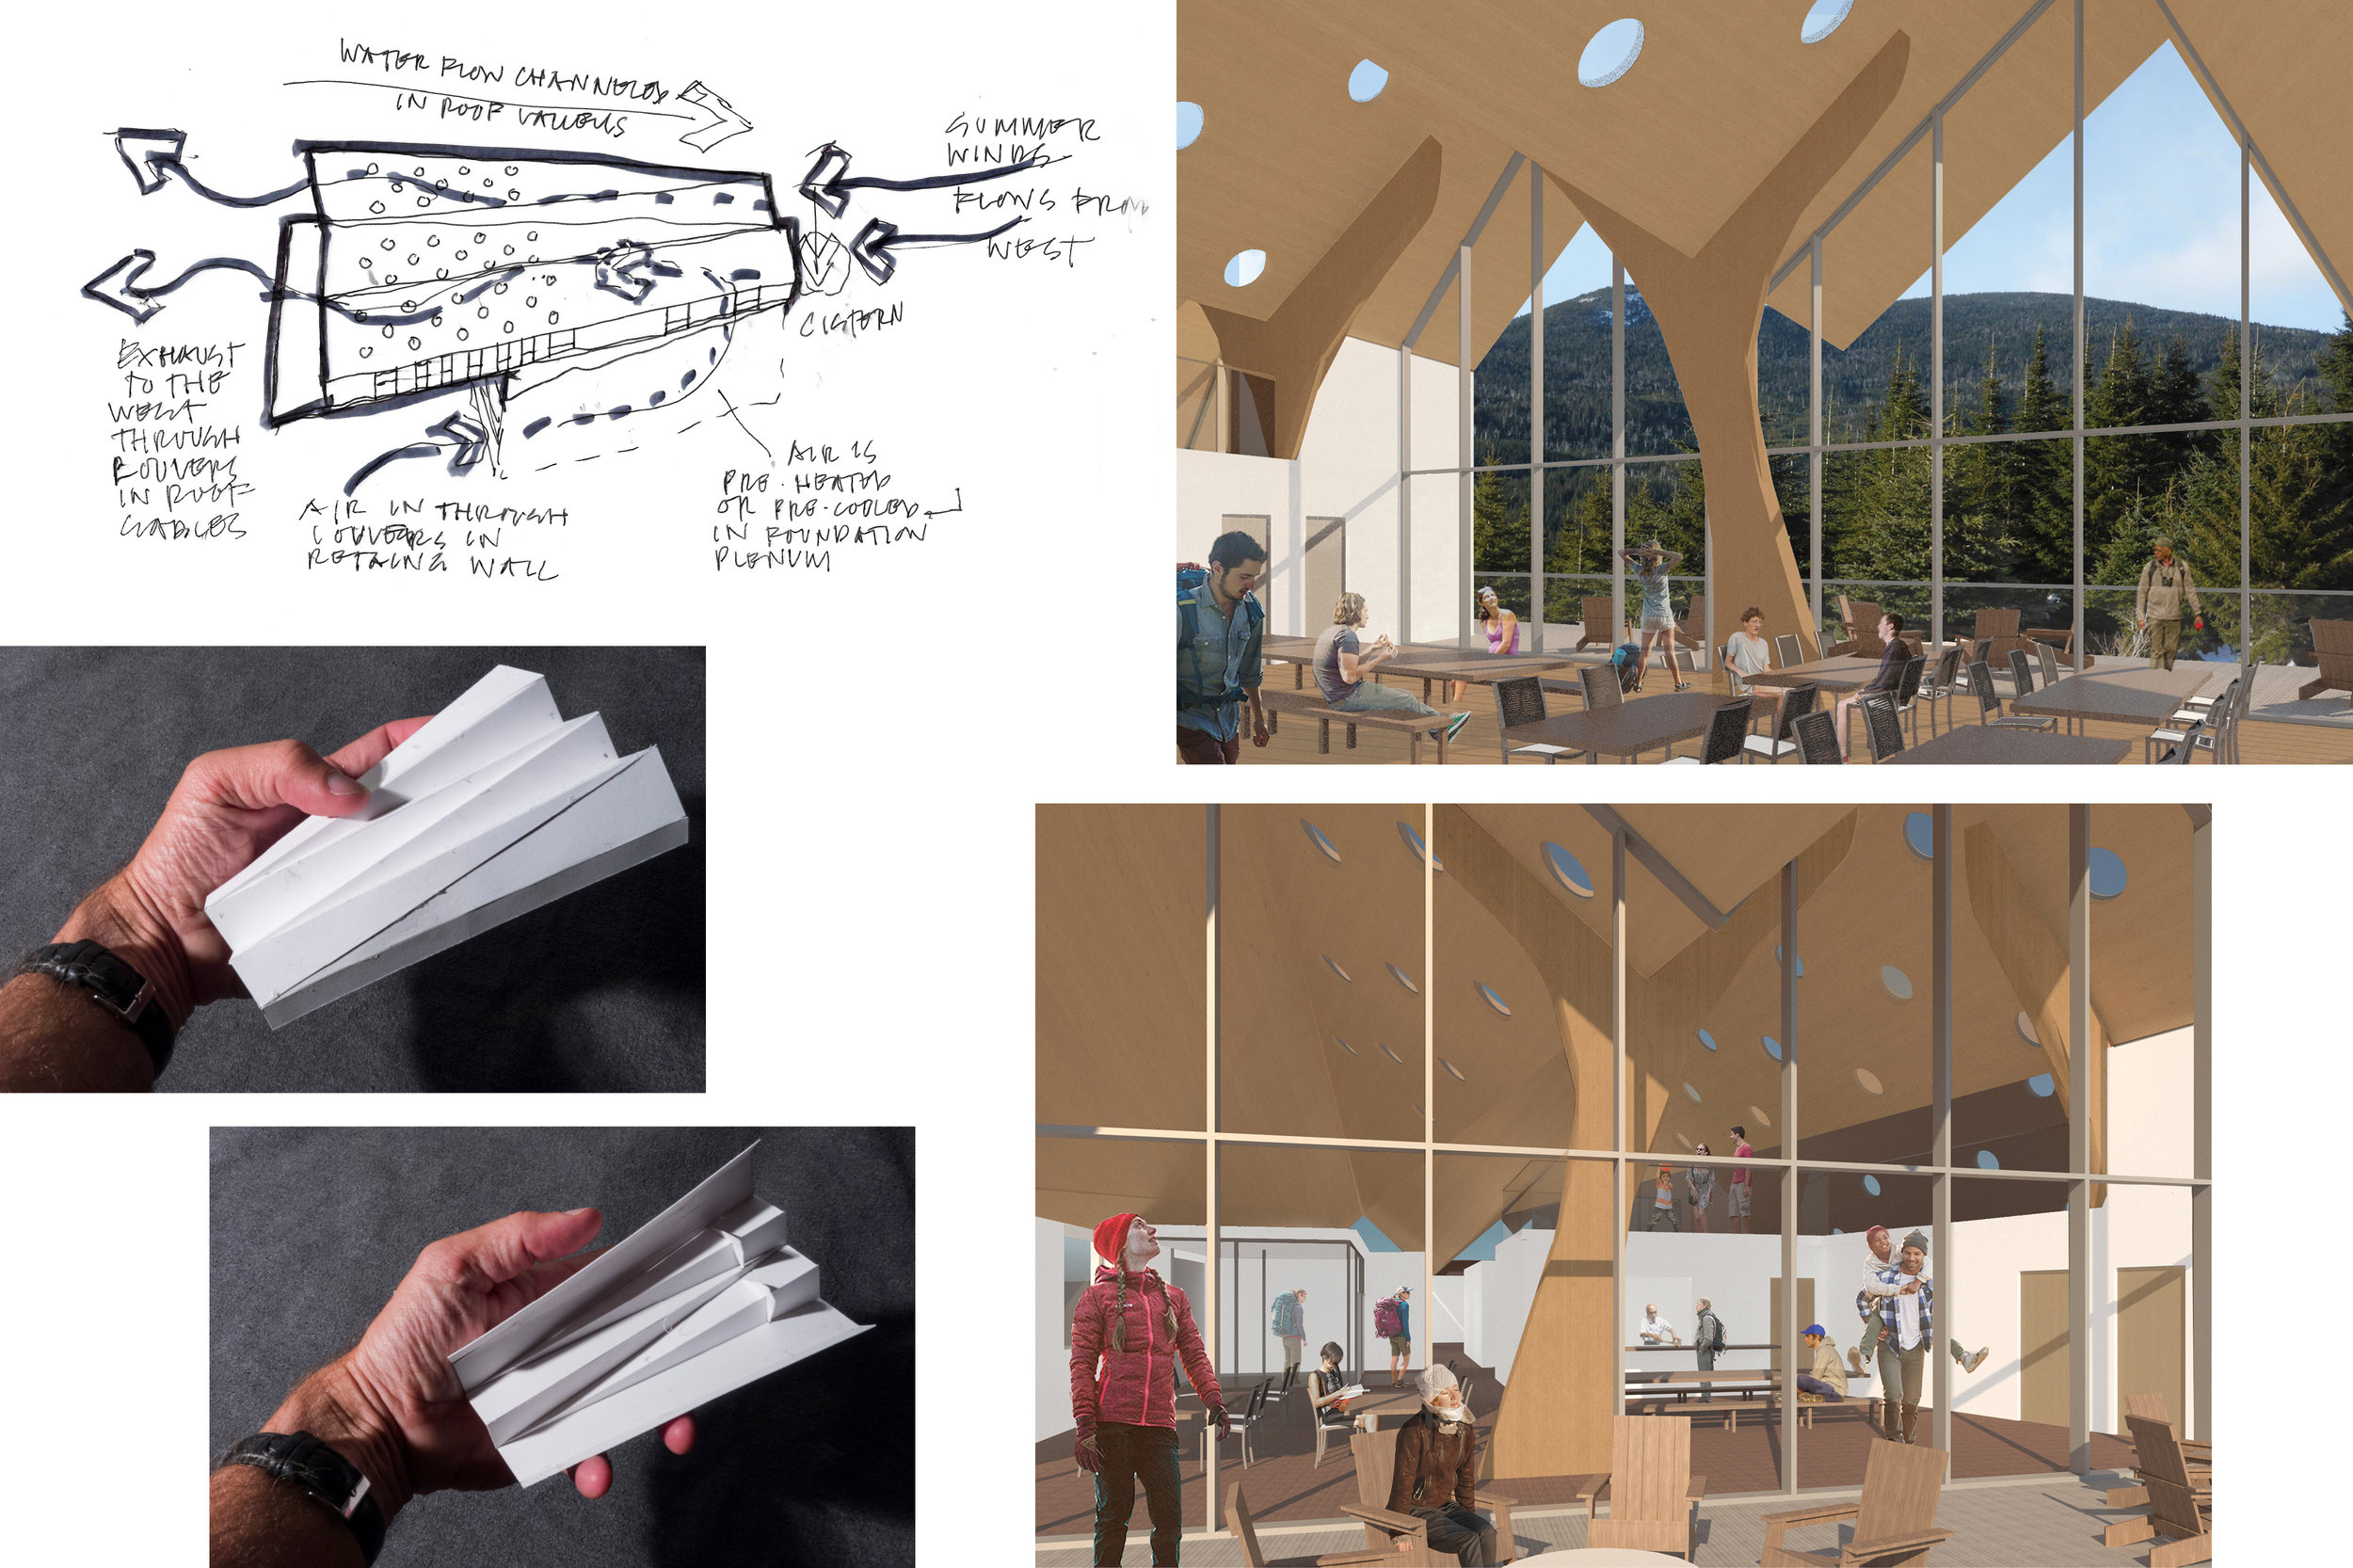 LEFT: CONCEPT FOR PASSIVE SYSTEMS (TOP), TOP AND BOTTOM SIDE VIEWS OF ROOF (BOTTOM); RIGHT: DINING HALL VIEWS